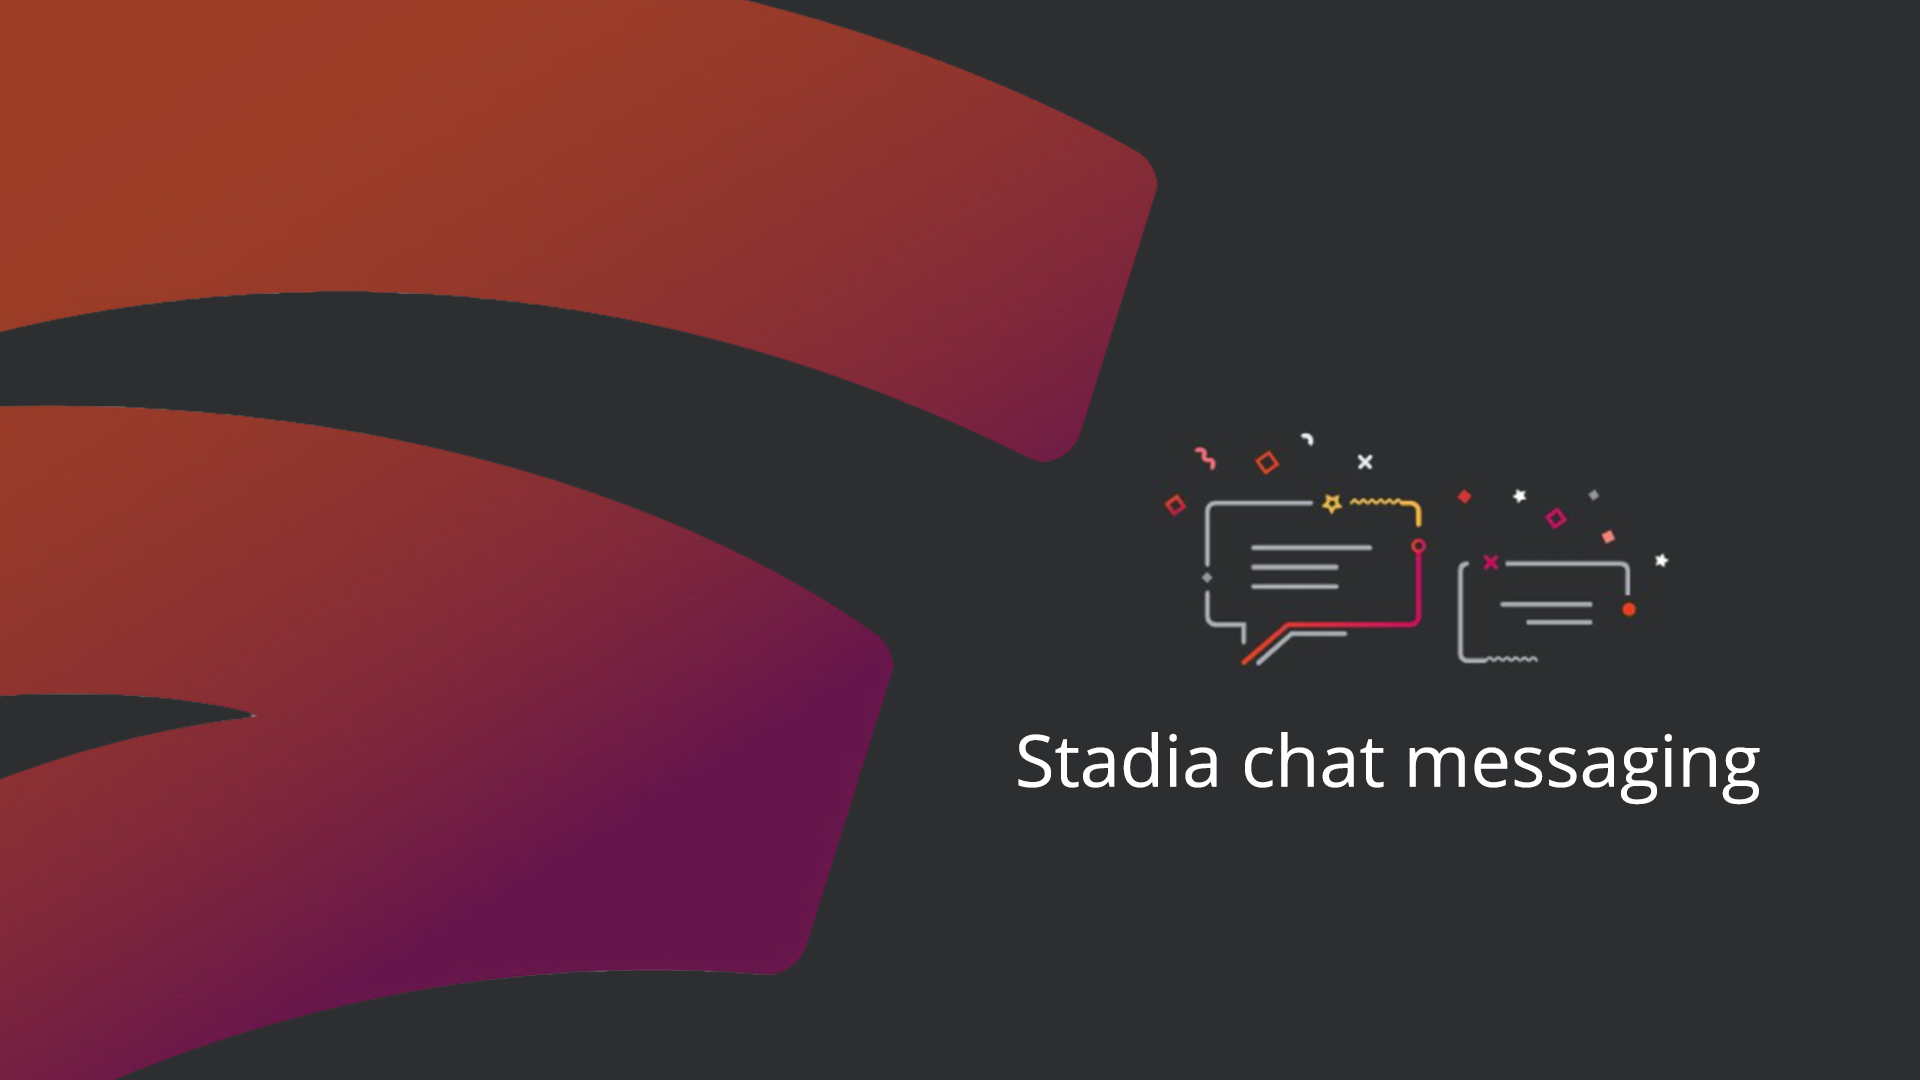 Stadia begins rolling out its long-awaited messaging feature